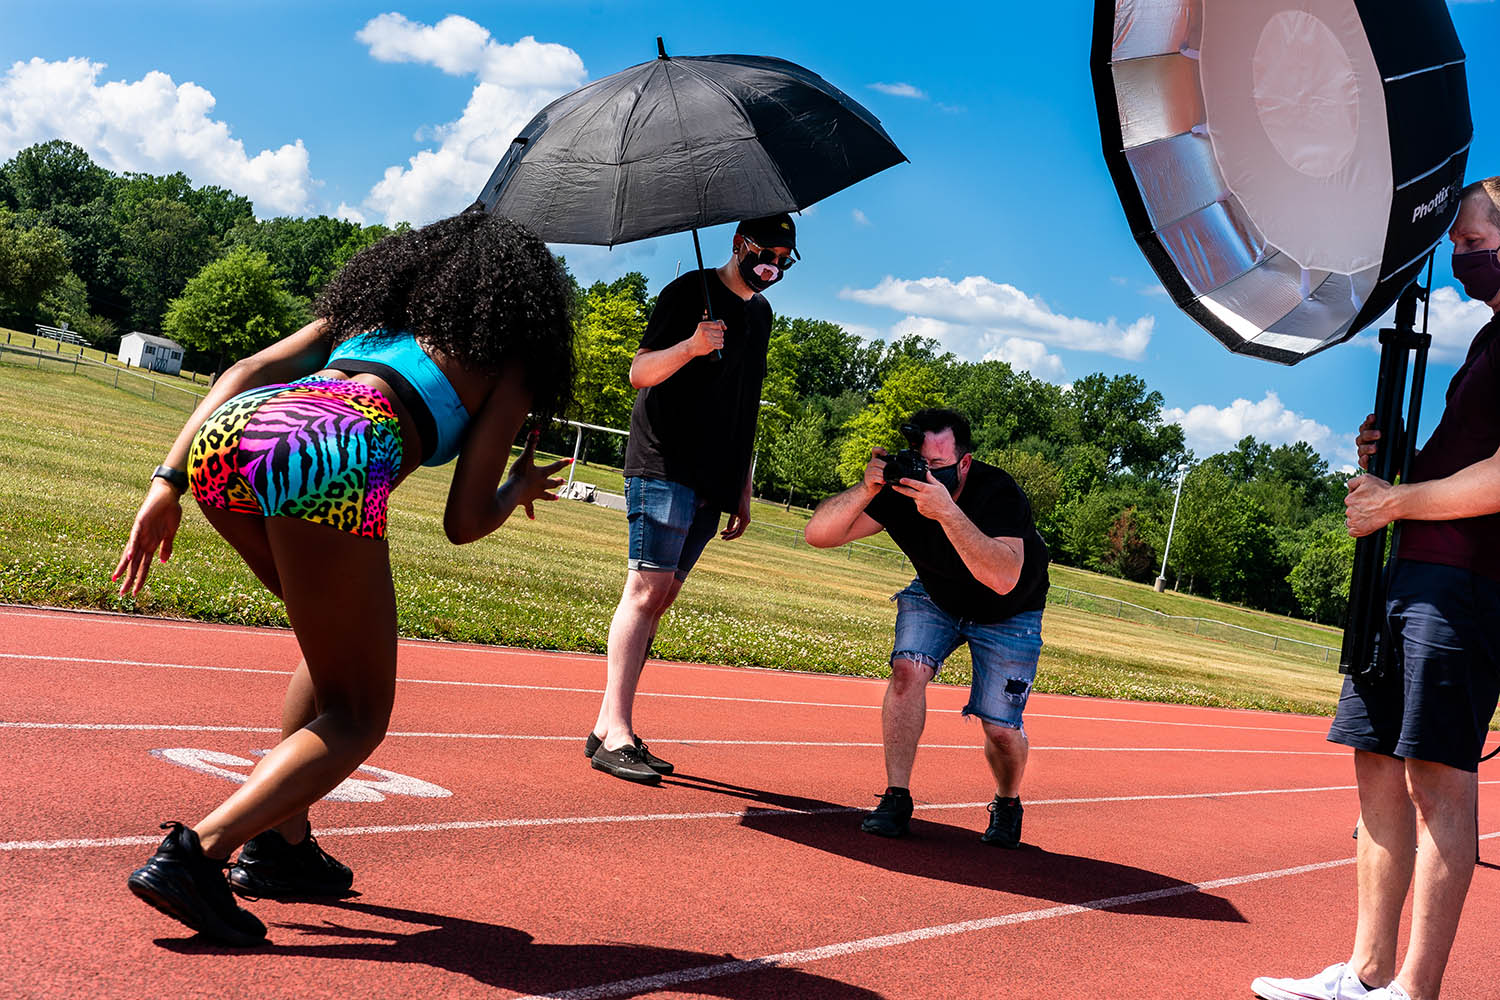 Photographer Joe Dantone works on a commercial set photographing athletes